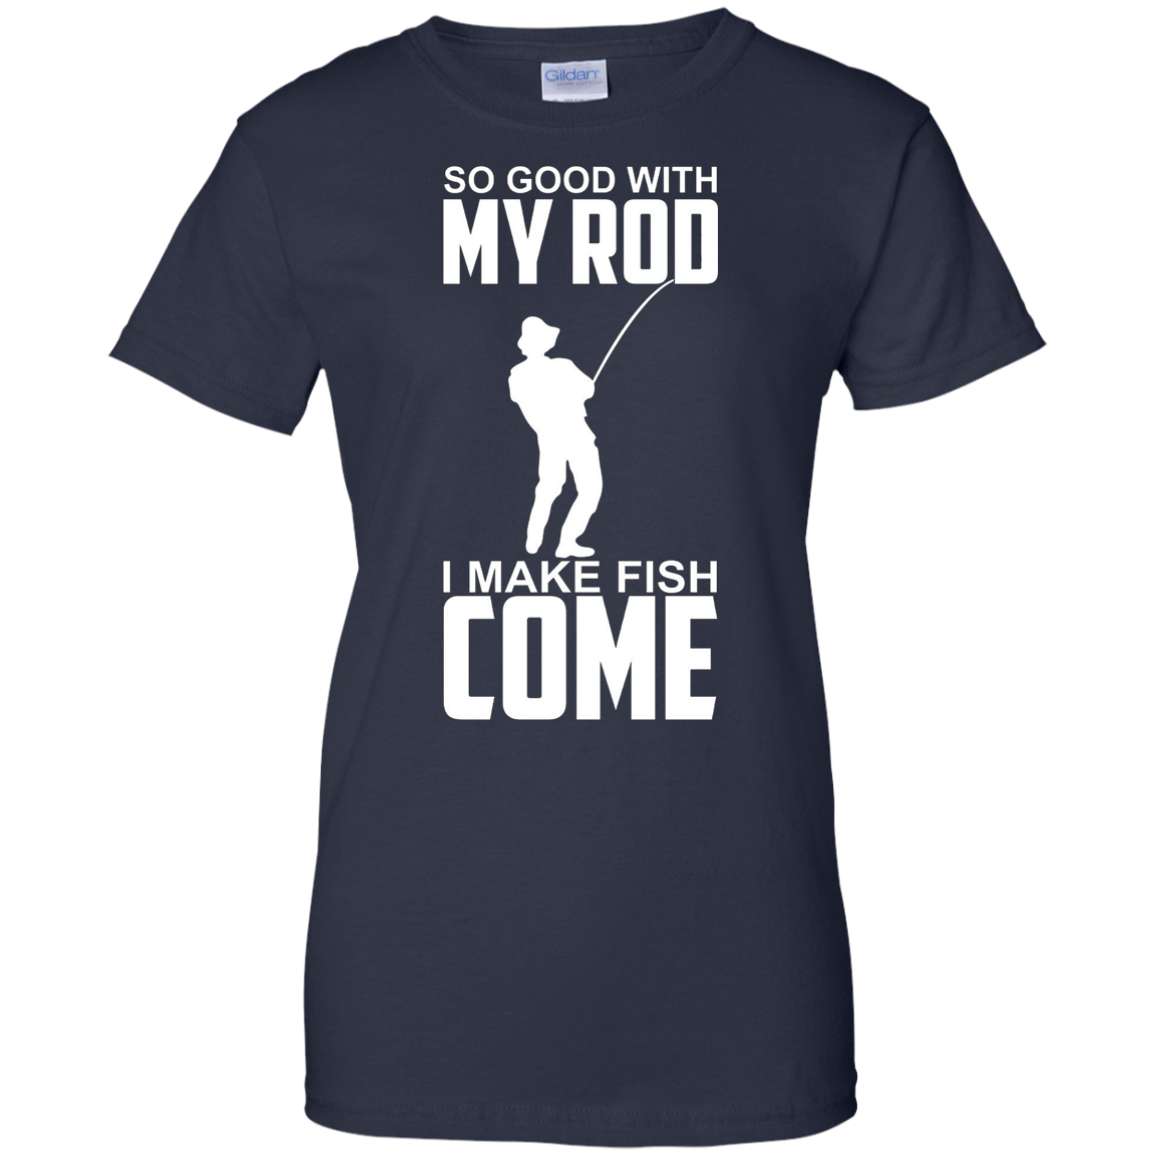 So Good With My Rod I Make Fish Come - Funny Fishing Shirt